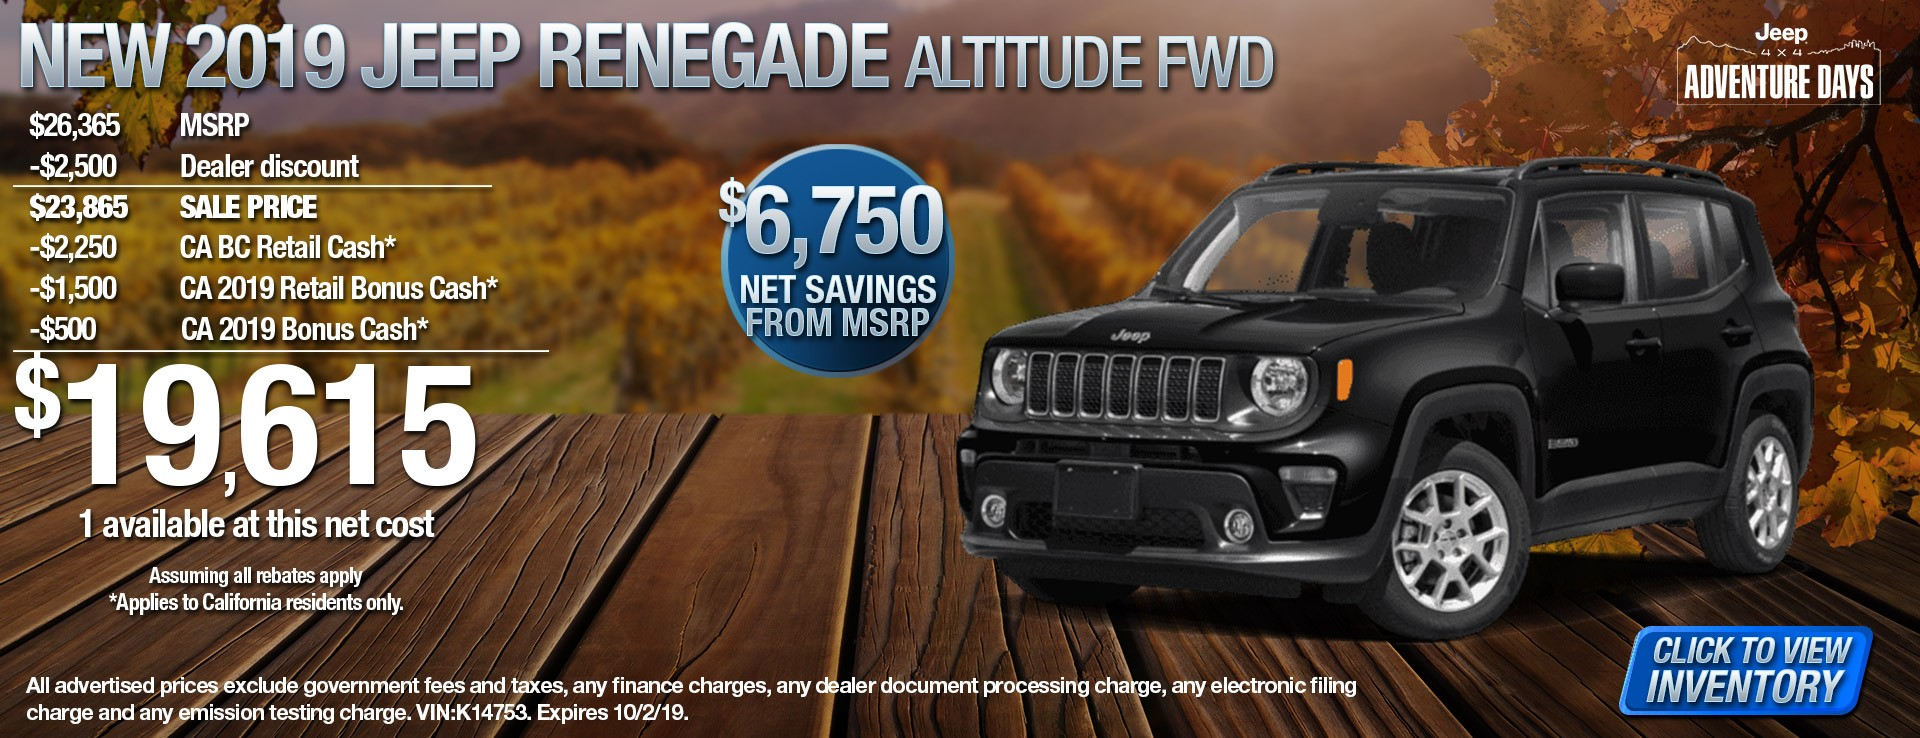 19 Jeep Renegade Alt